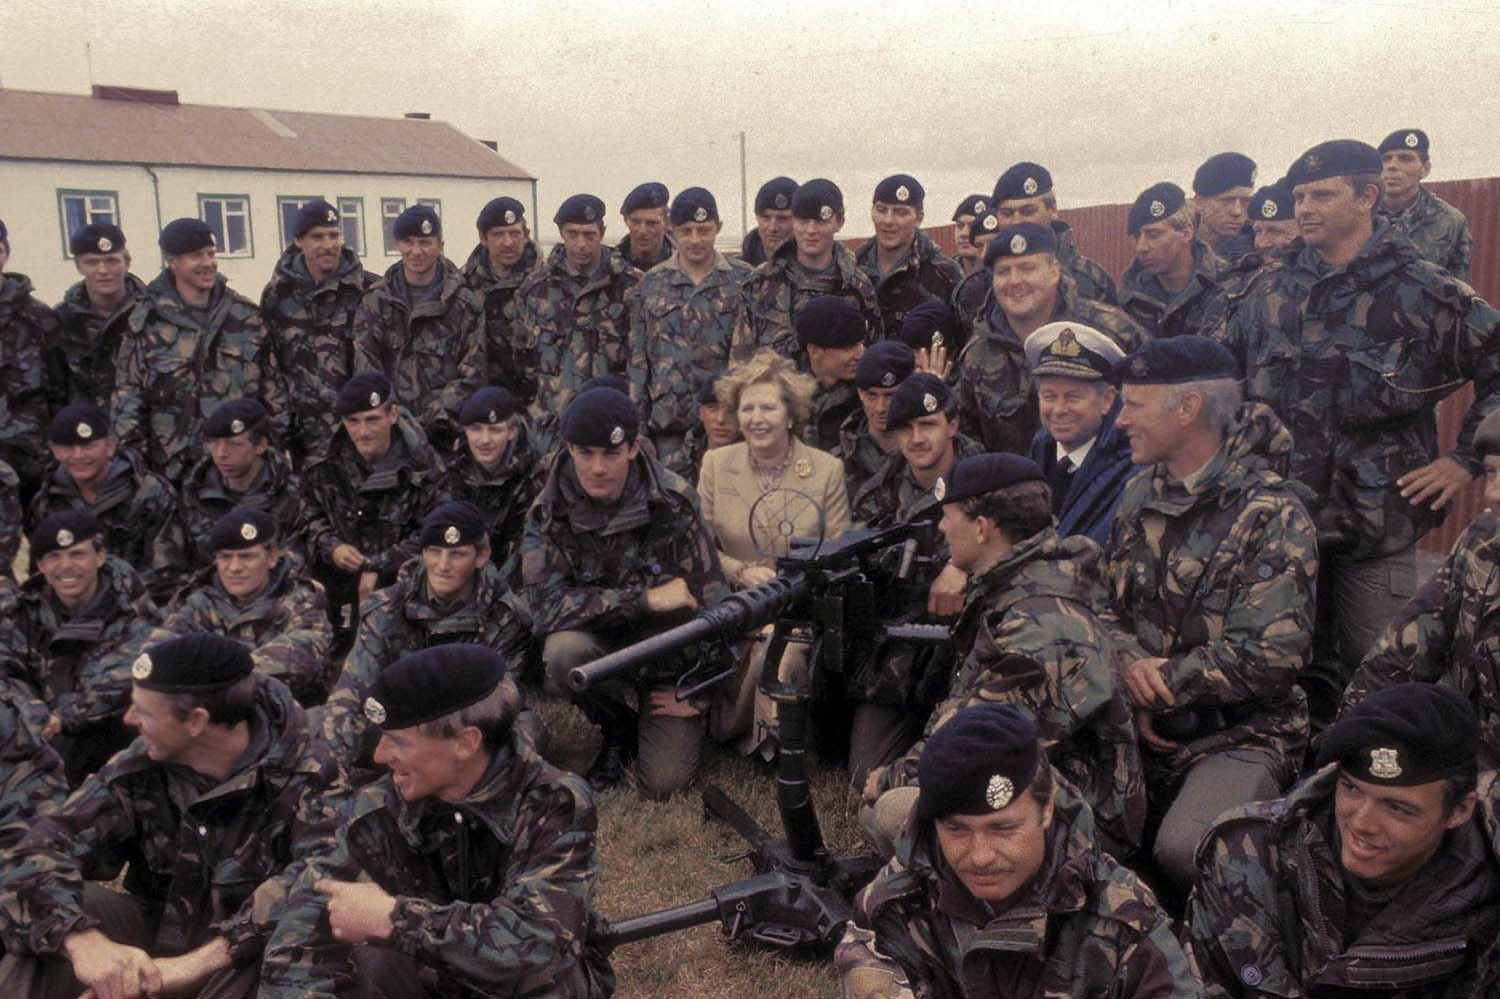 060 Margaret Thatcher in Falkland Islands after Argentina's surrender, 1983 2.jpg